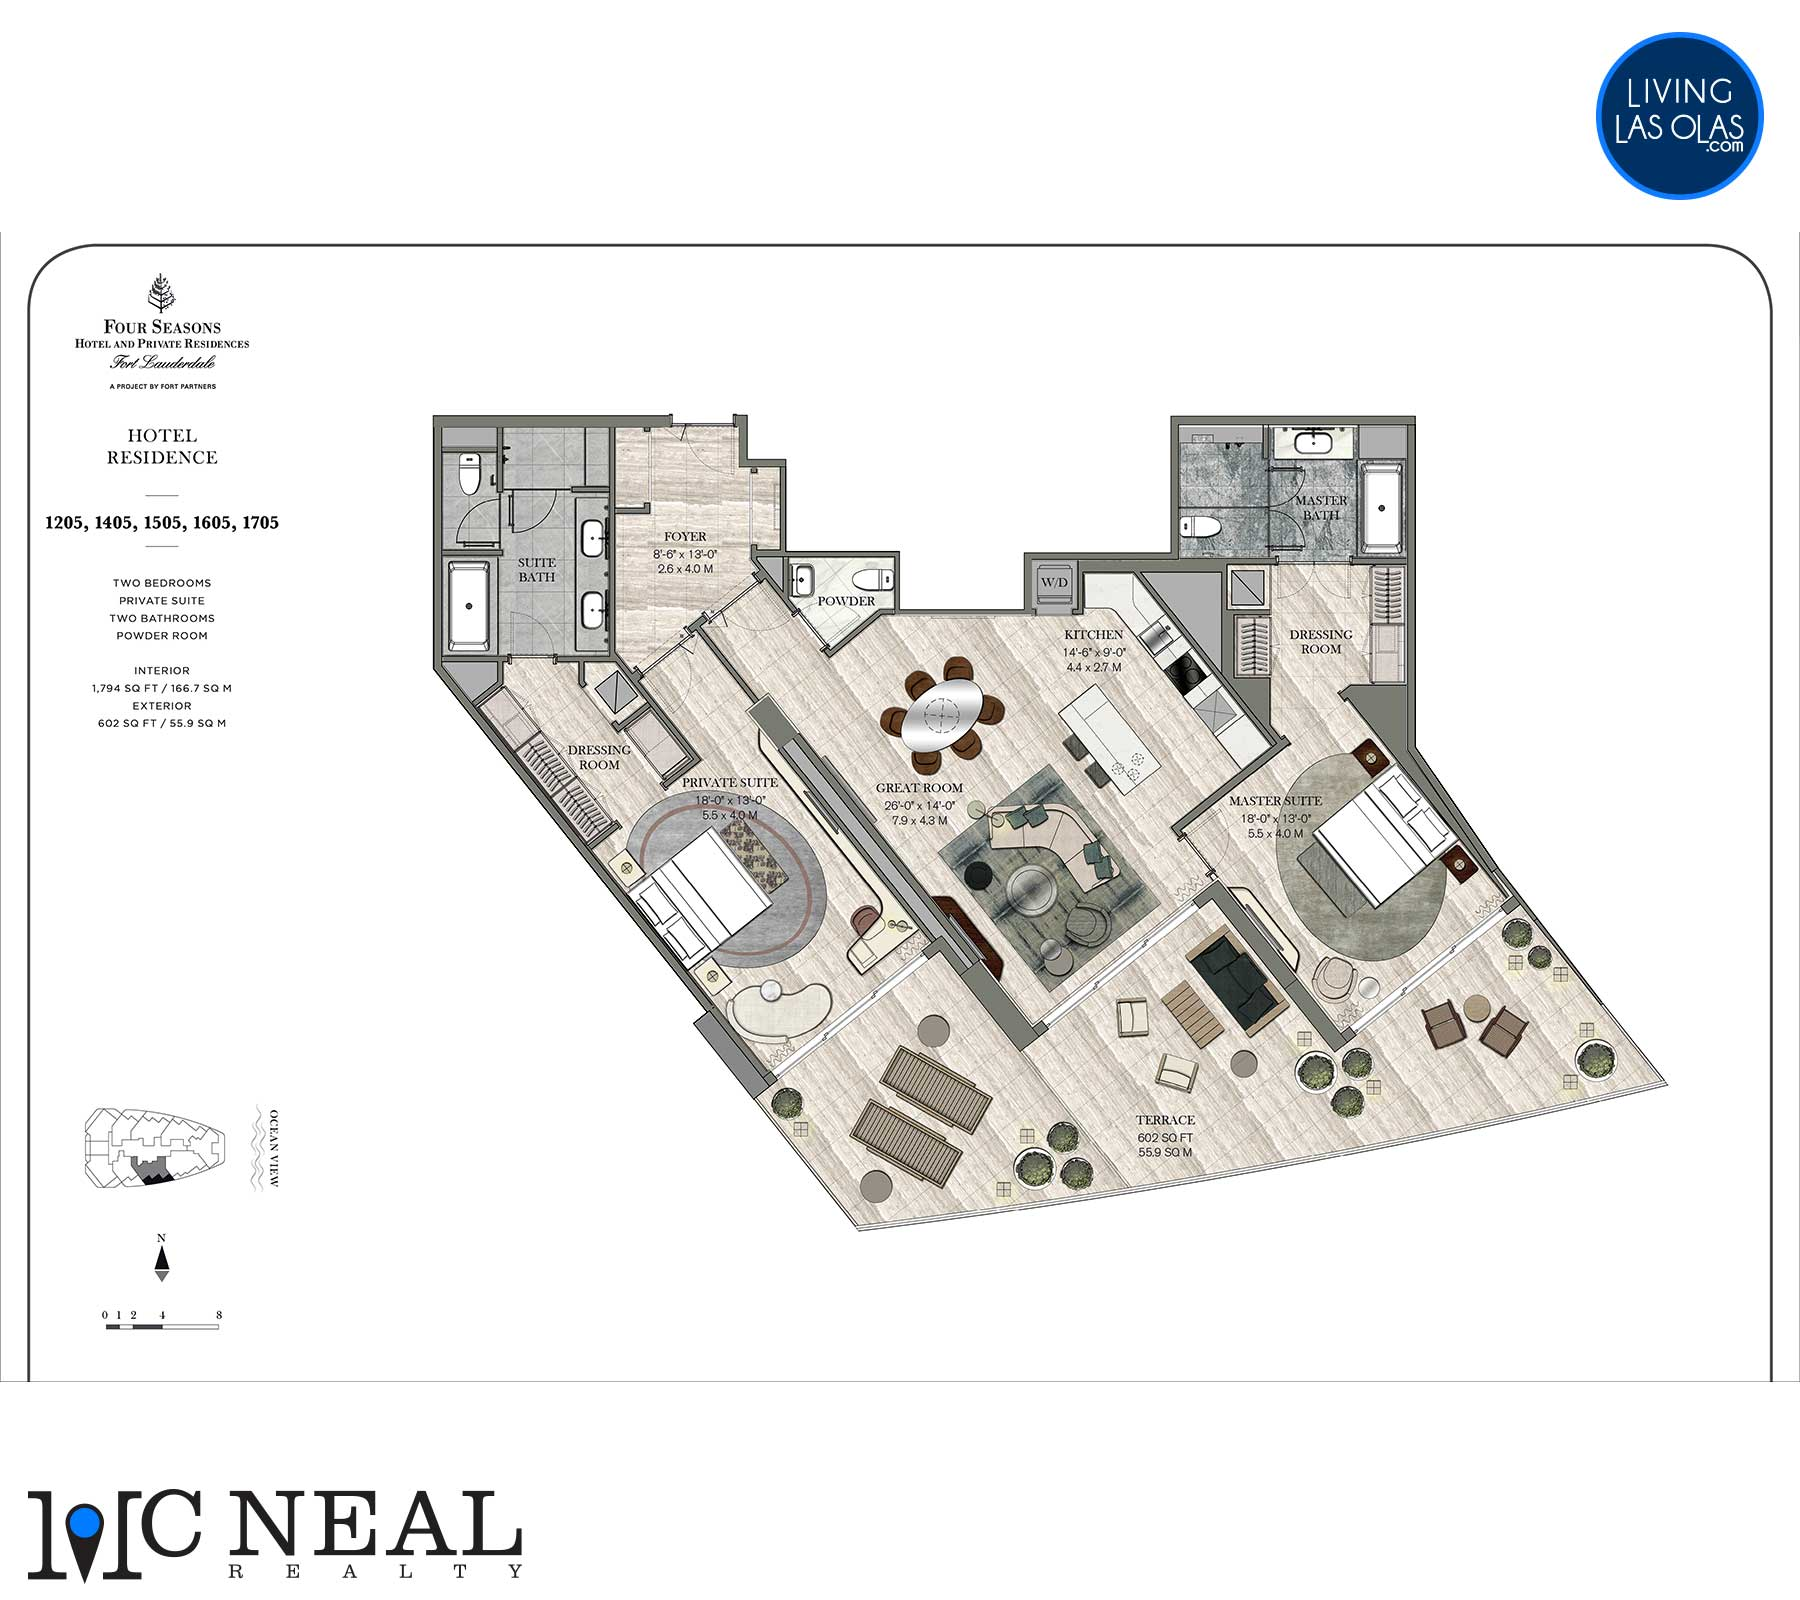 Four Seasons Hotel Residences Floor Plan 1205-1705